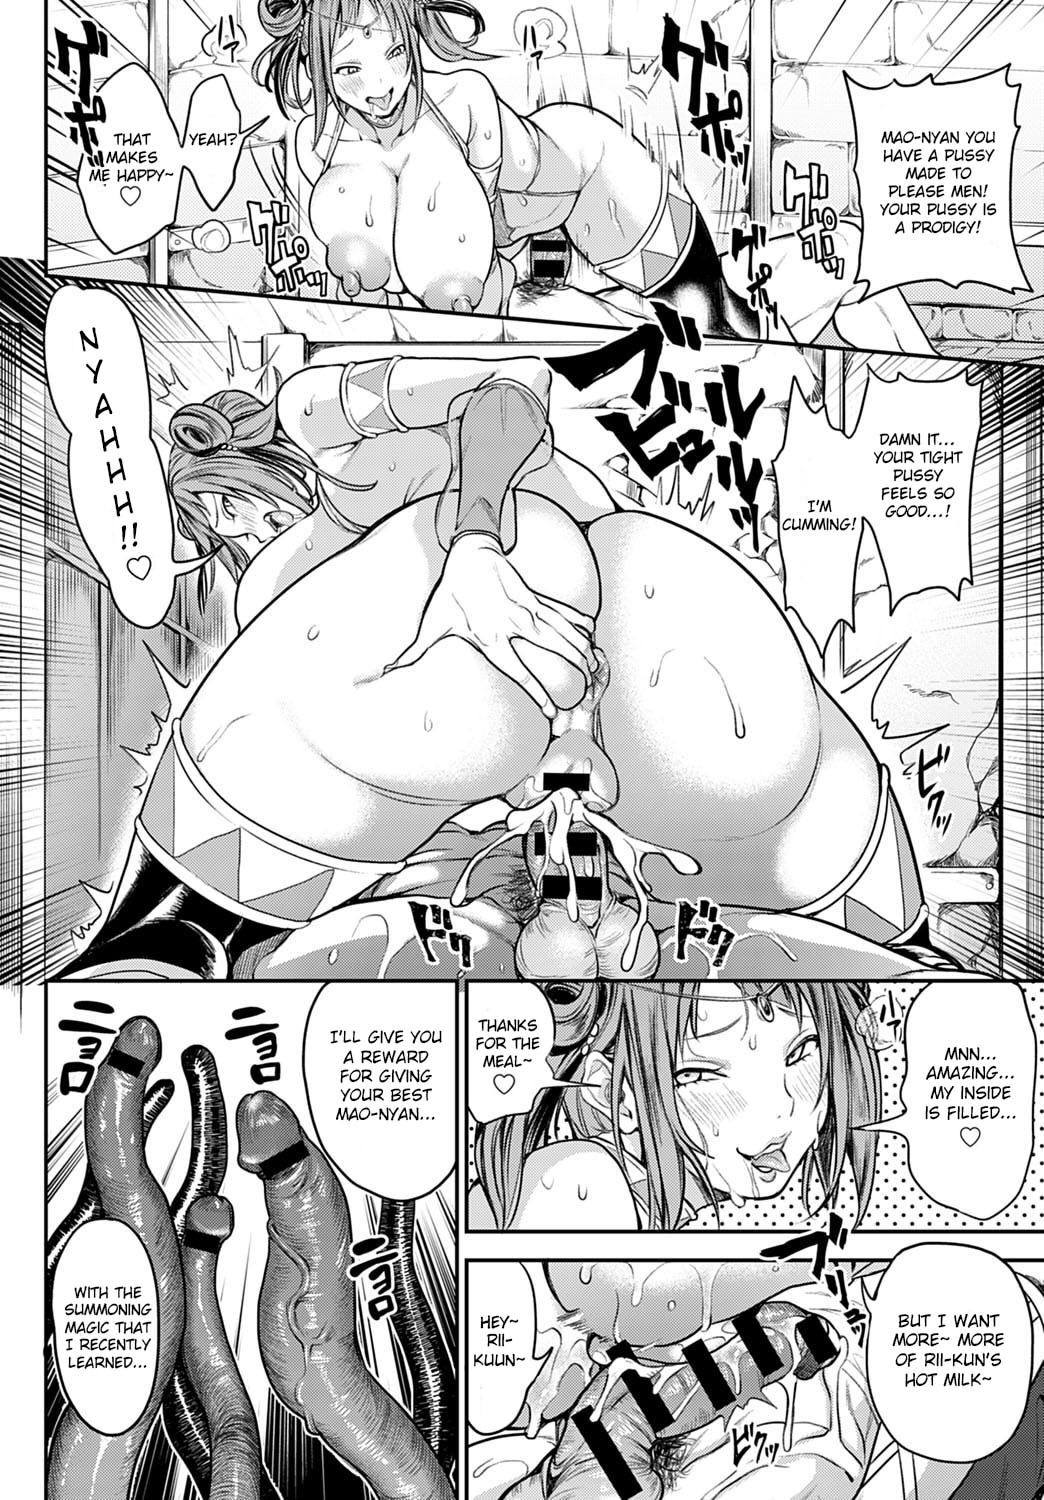 [Announ] Ore Saikyou Quest ~Isekai Harem no Sho Jou~ | My story with my Harem in another world Ch 1 (COMIC Anthurium 2020-11) [English] [Digital] 11